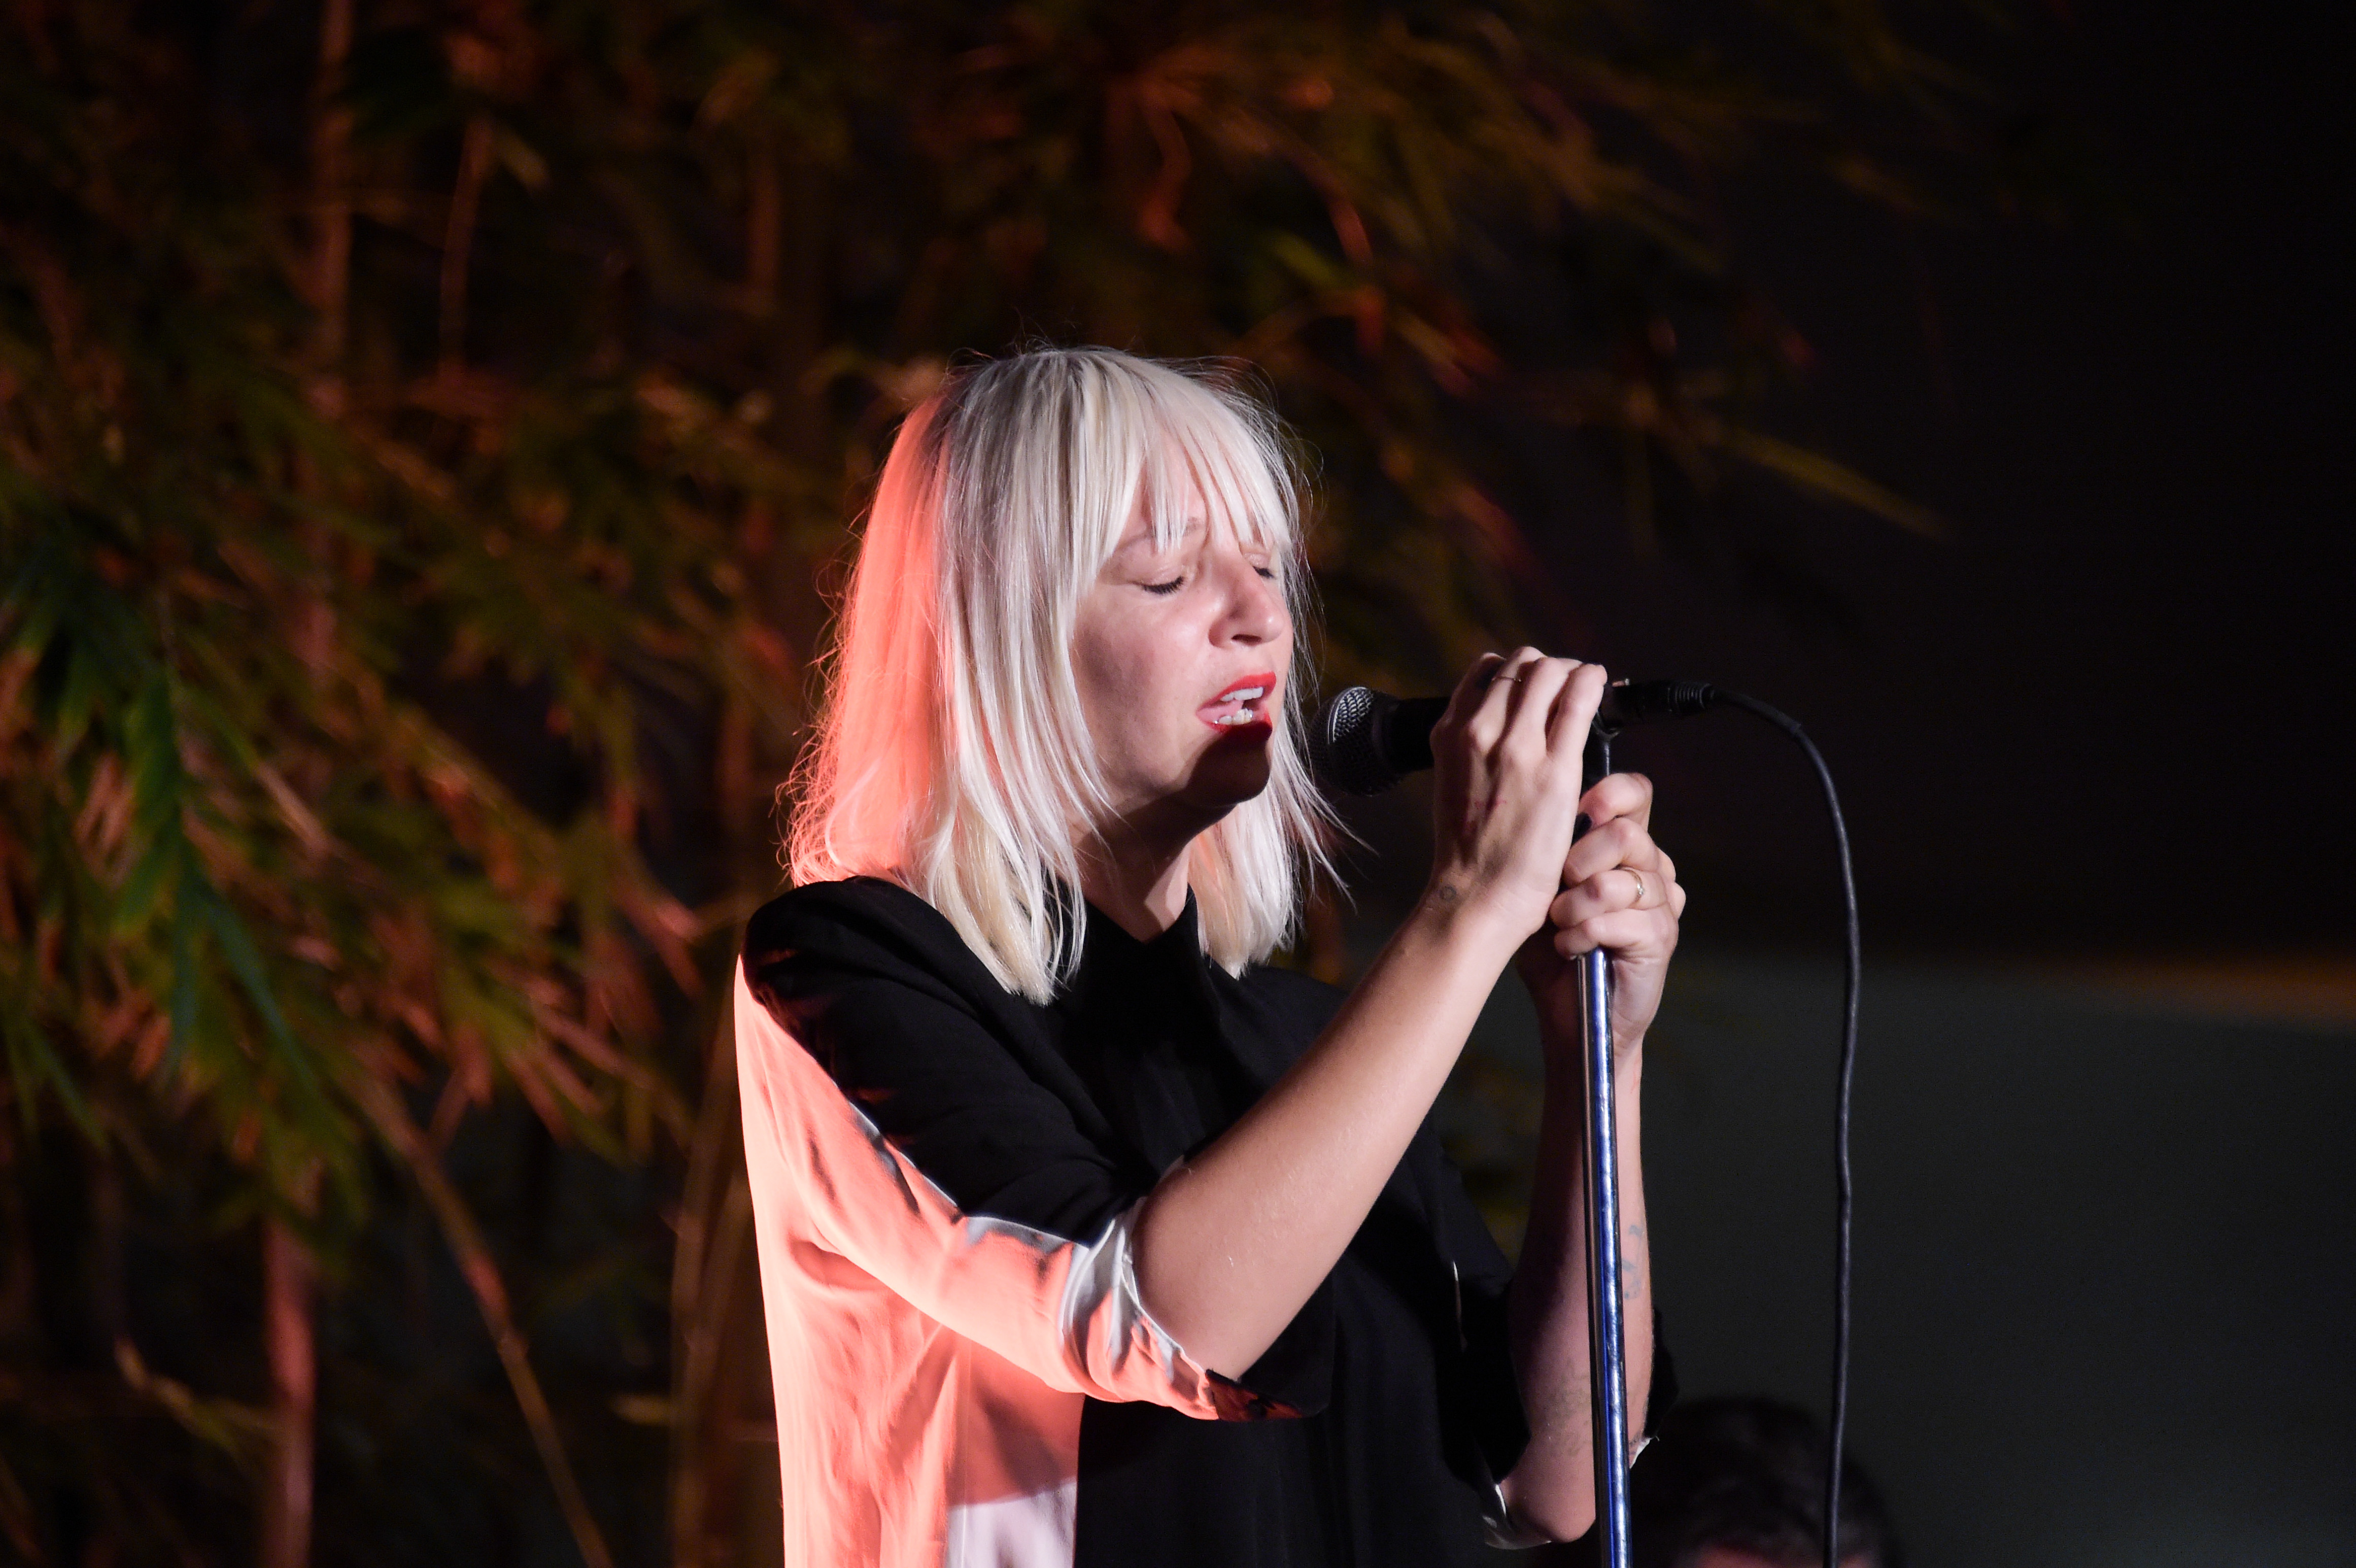 Sia Furler attends Hammer Museum 12th Annual Gala In The Garden on Oct. 12, 2014 in Westwood, California.